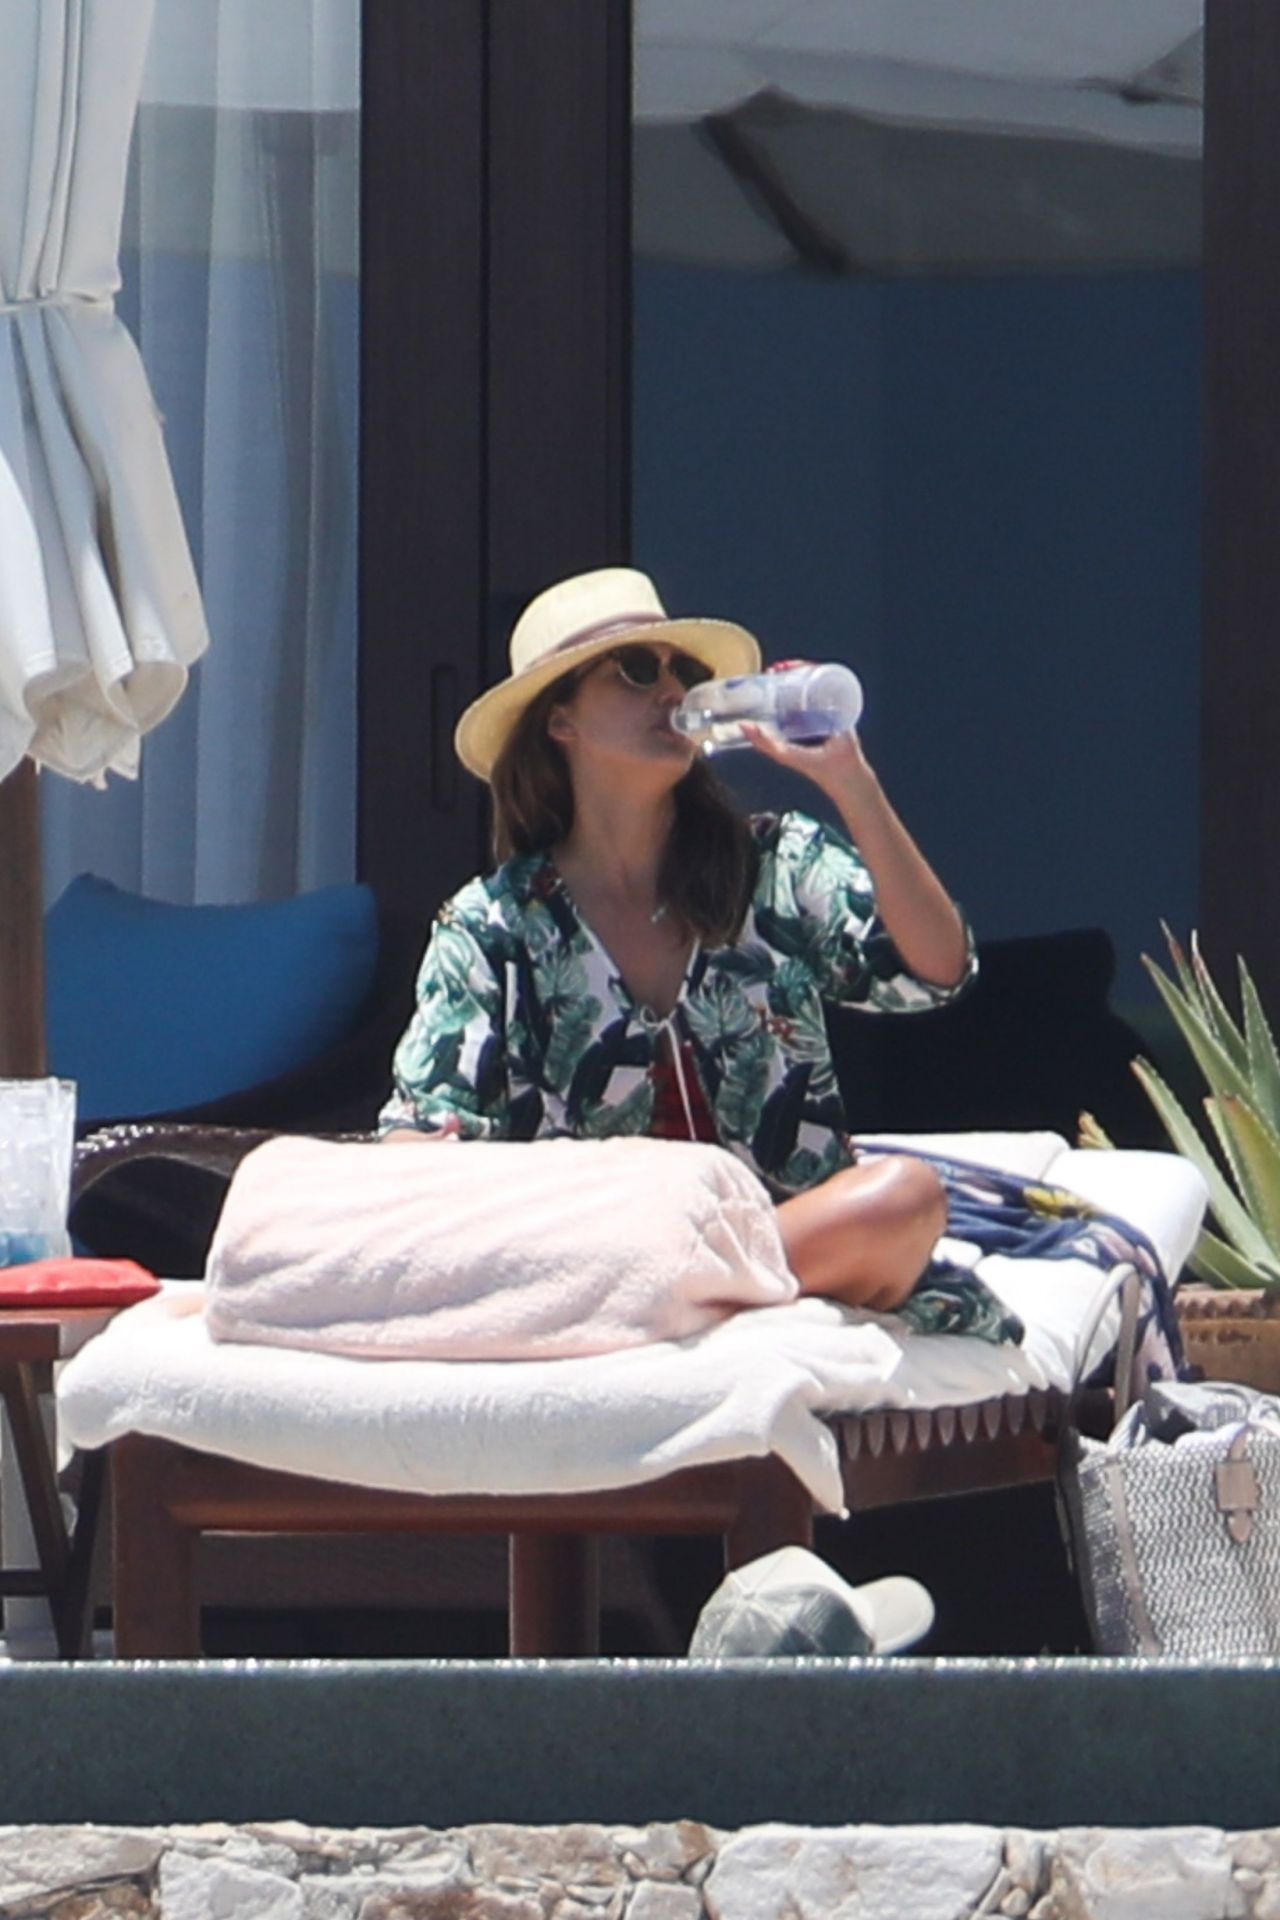 https://i0.wp.com/celebmafia.com/wp-content/uploads/2018/05/jessica-alba-relaxing-at-a-resort-in-cabo-san-lucas-05-02-2018-3.jpg